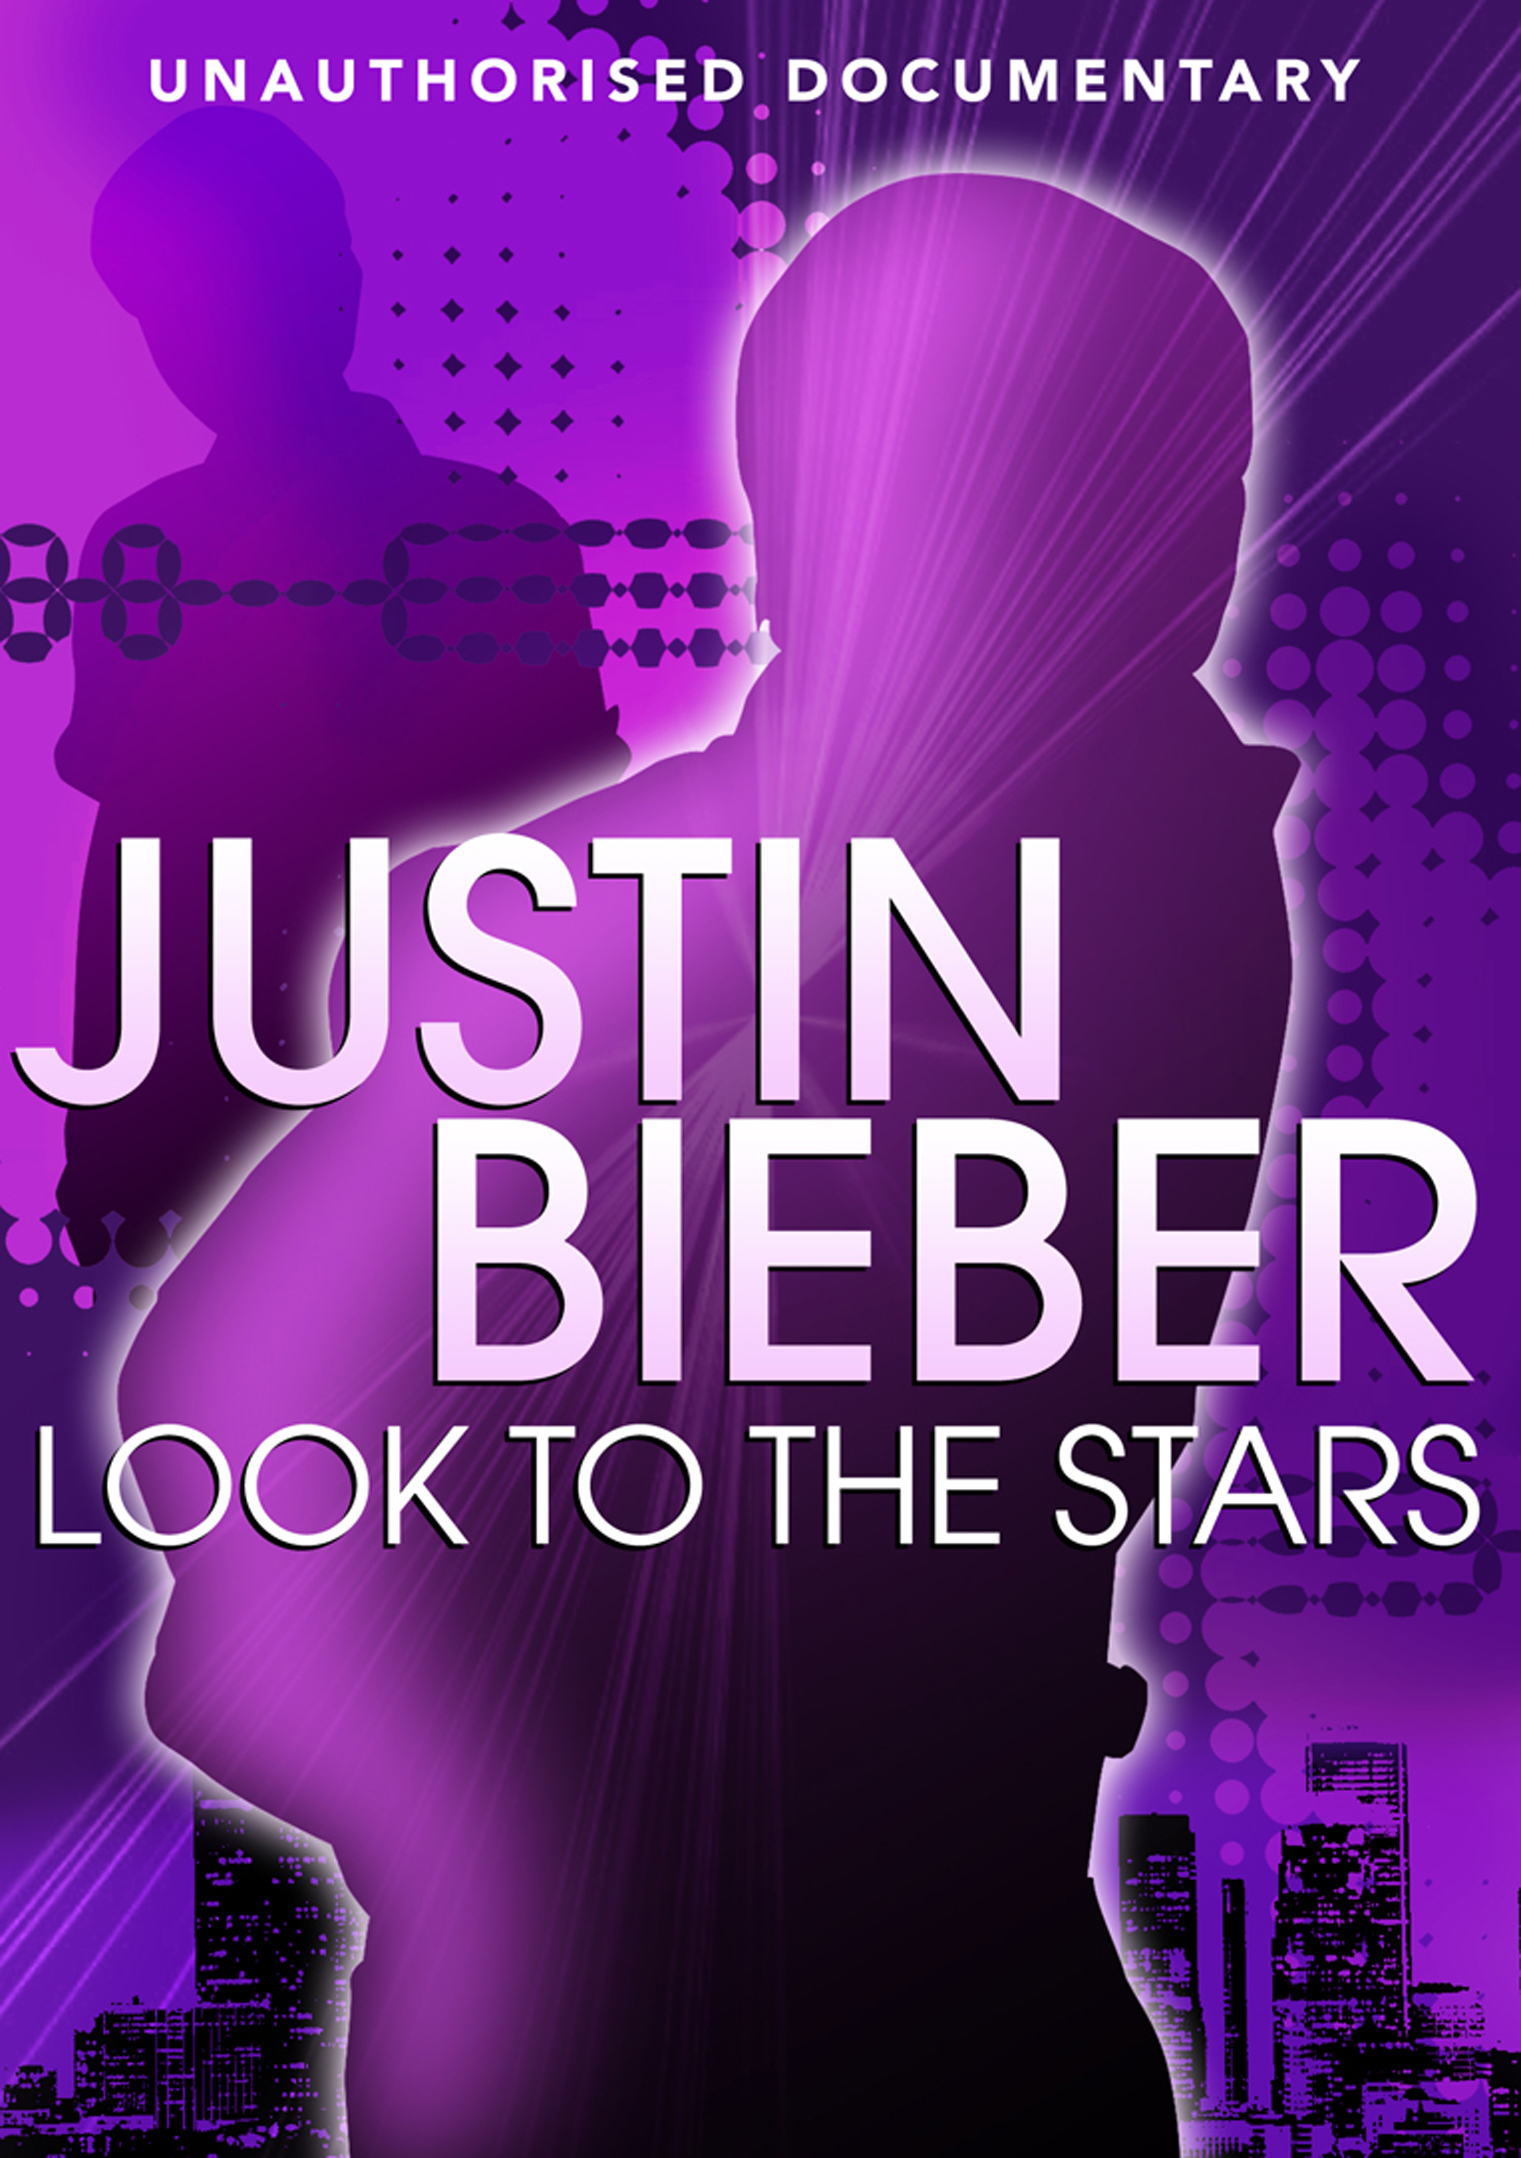 Justin Bieber: Look to the Stars